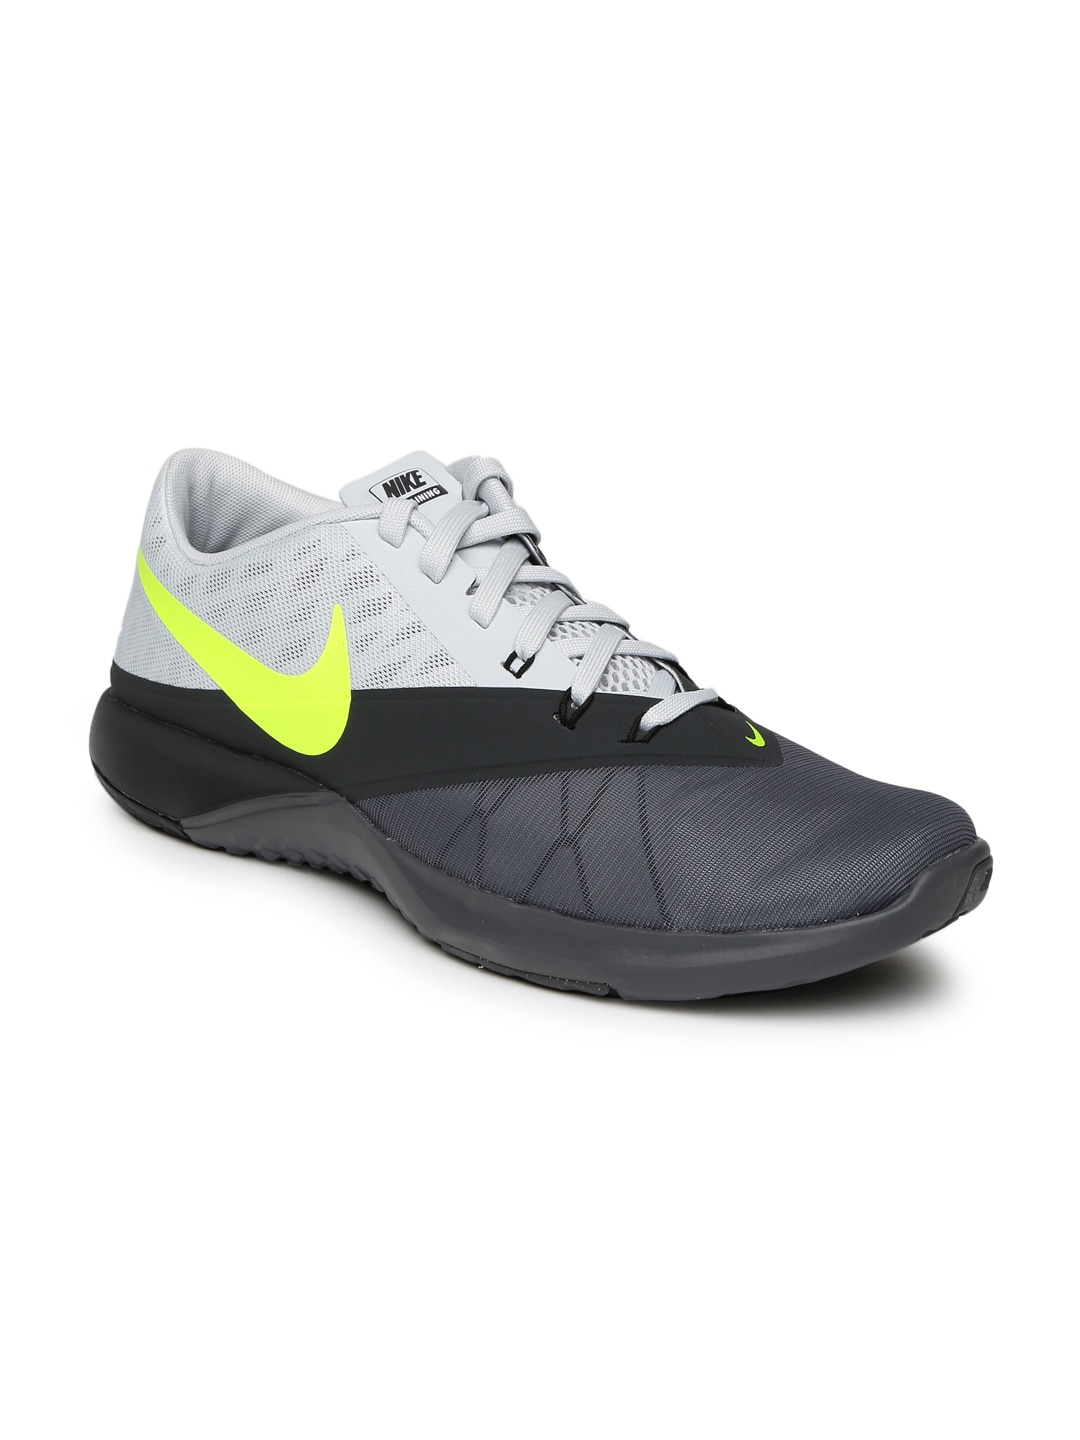 Men's Lifestyle Shoes. Nike.com AU.